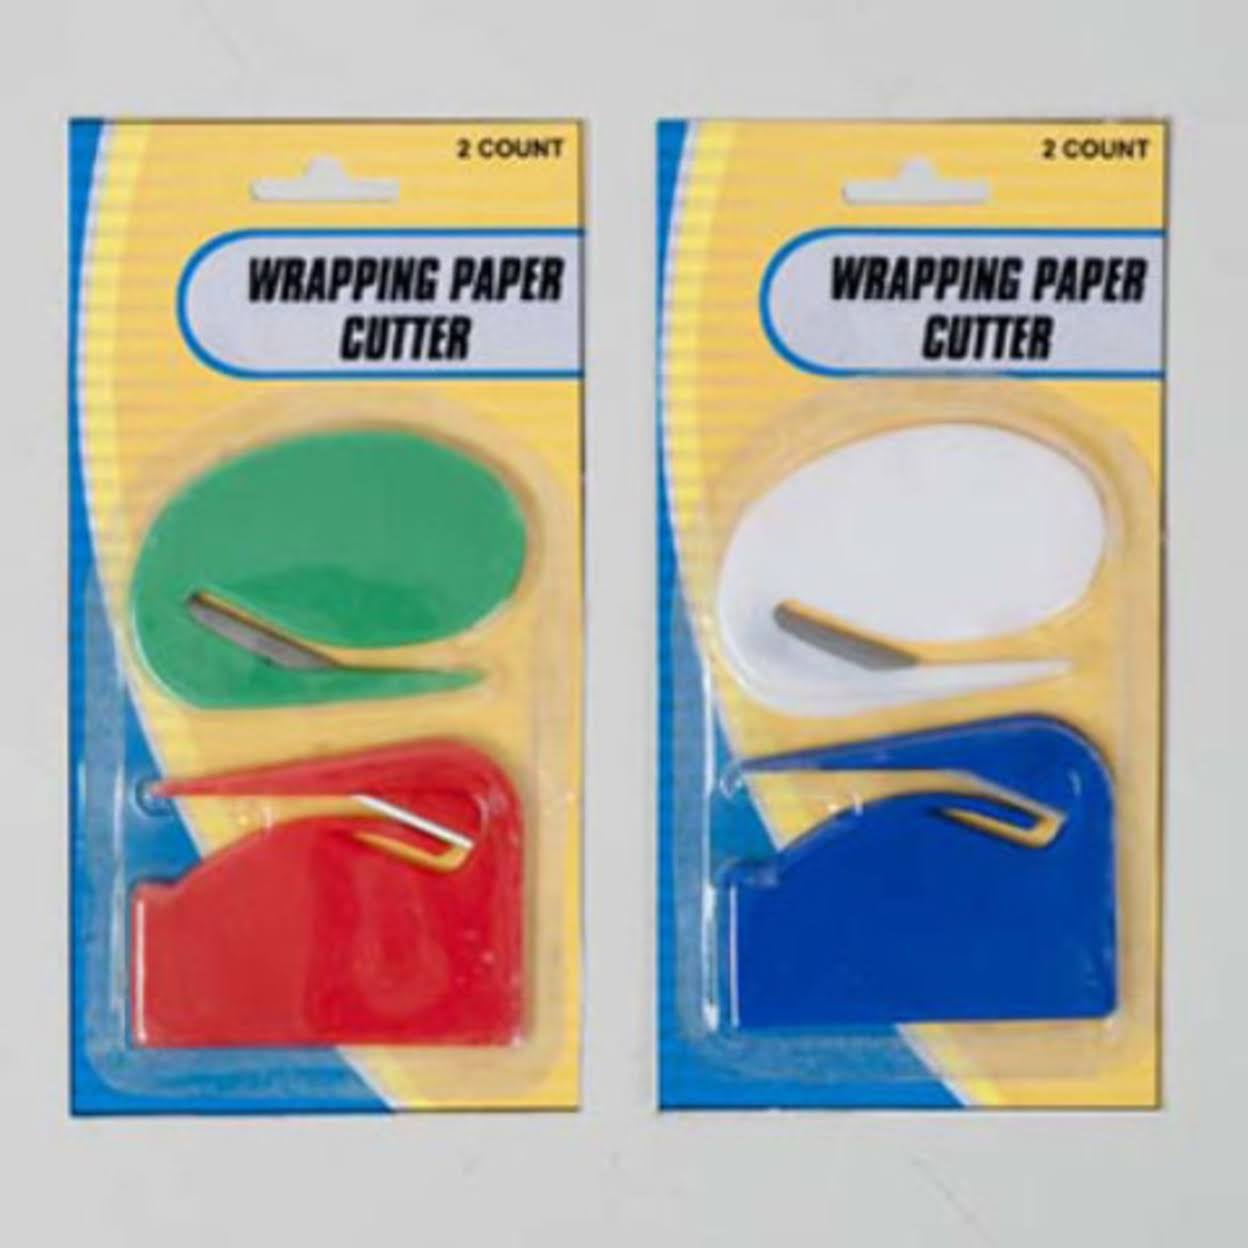 DDI 2124560 Wrapping Paper Cutter - 2 Pack Case of 48